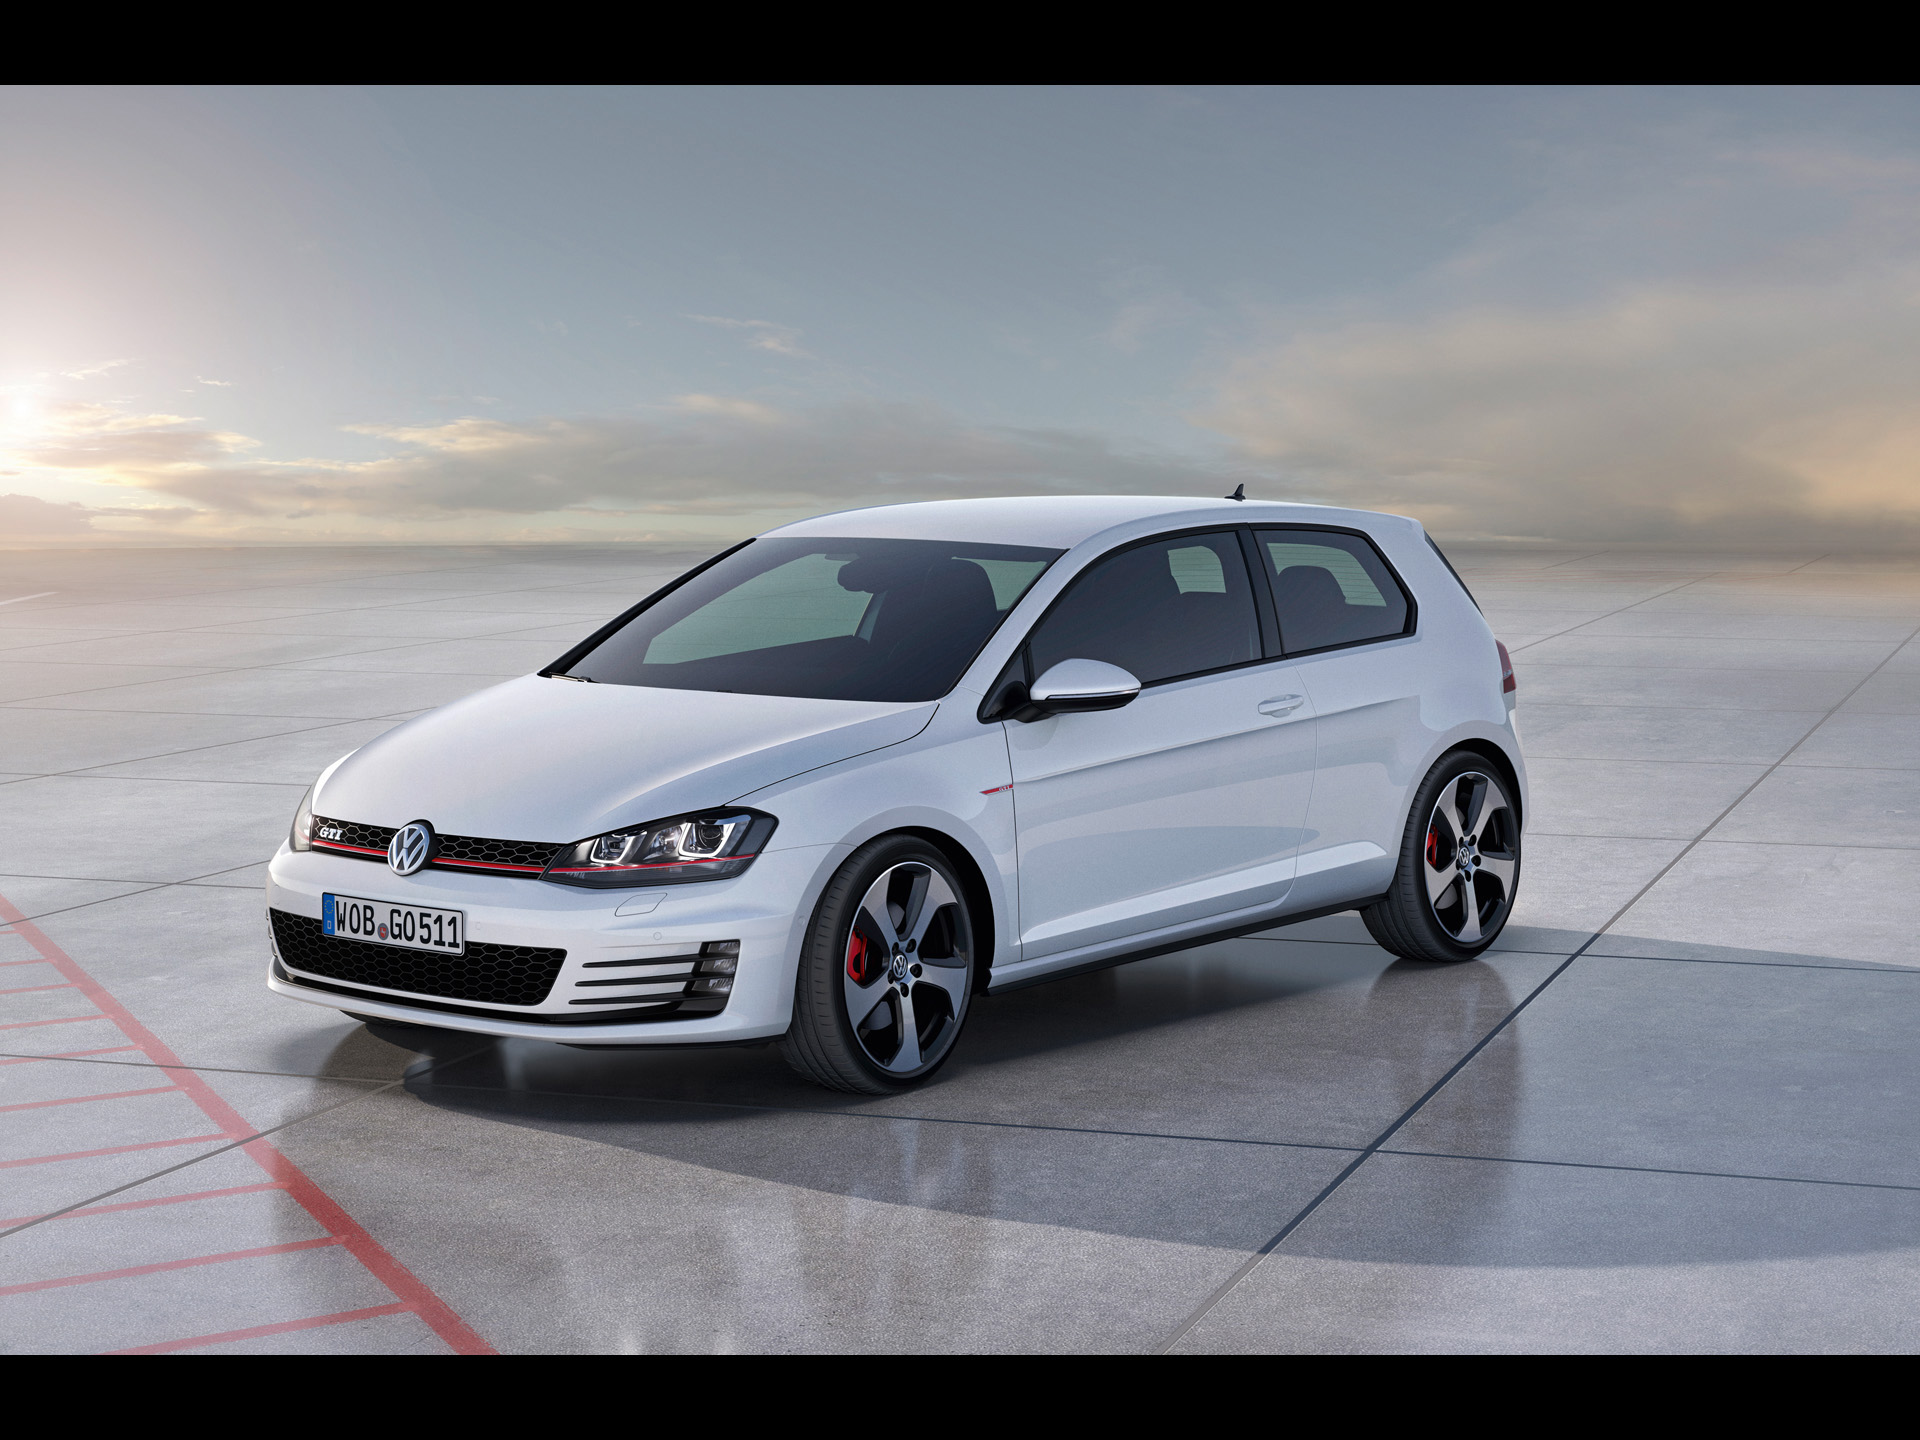 2012 volkswagen golf 7 gti concept static side angle wallpapers 2012 volkswagen golf 7 gti. Black Bedroom Furniture Sets. Home Design Ideas